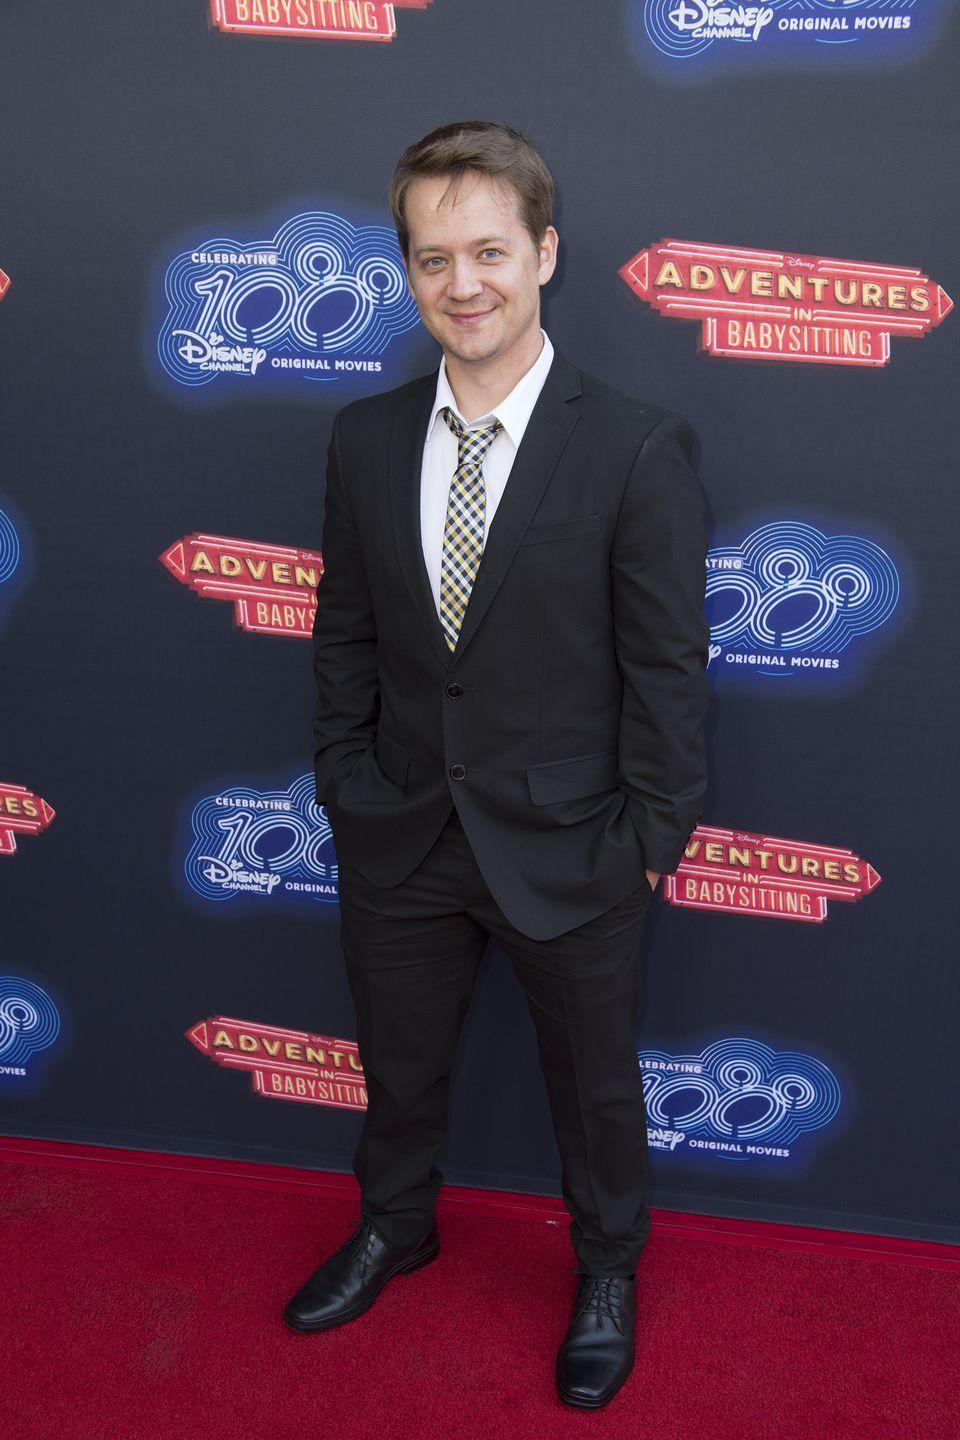 <p>Fans may still know Earles from his early Disney days, but after that, he starred in Disney XD's <em>Kickin' It</em>. Since that show ended, though, he's primarily been heard (rather than seen) on various animated shows. Good for him!</p>